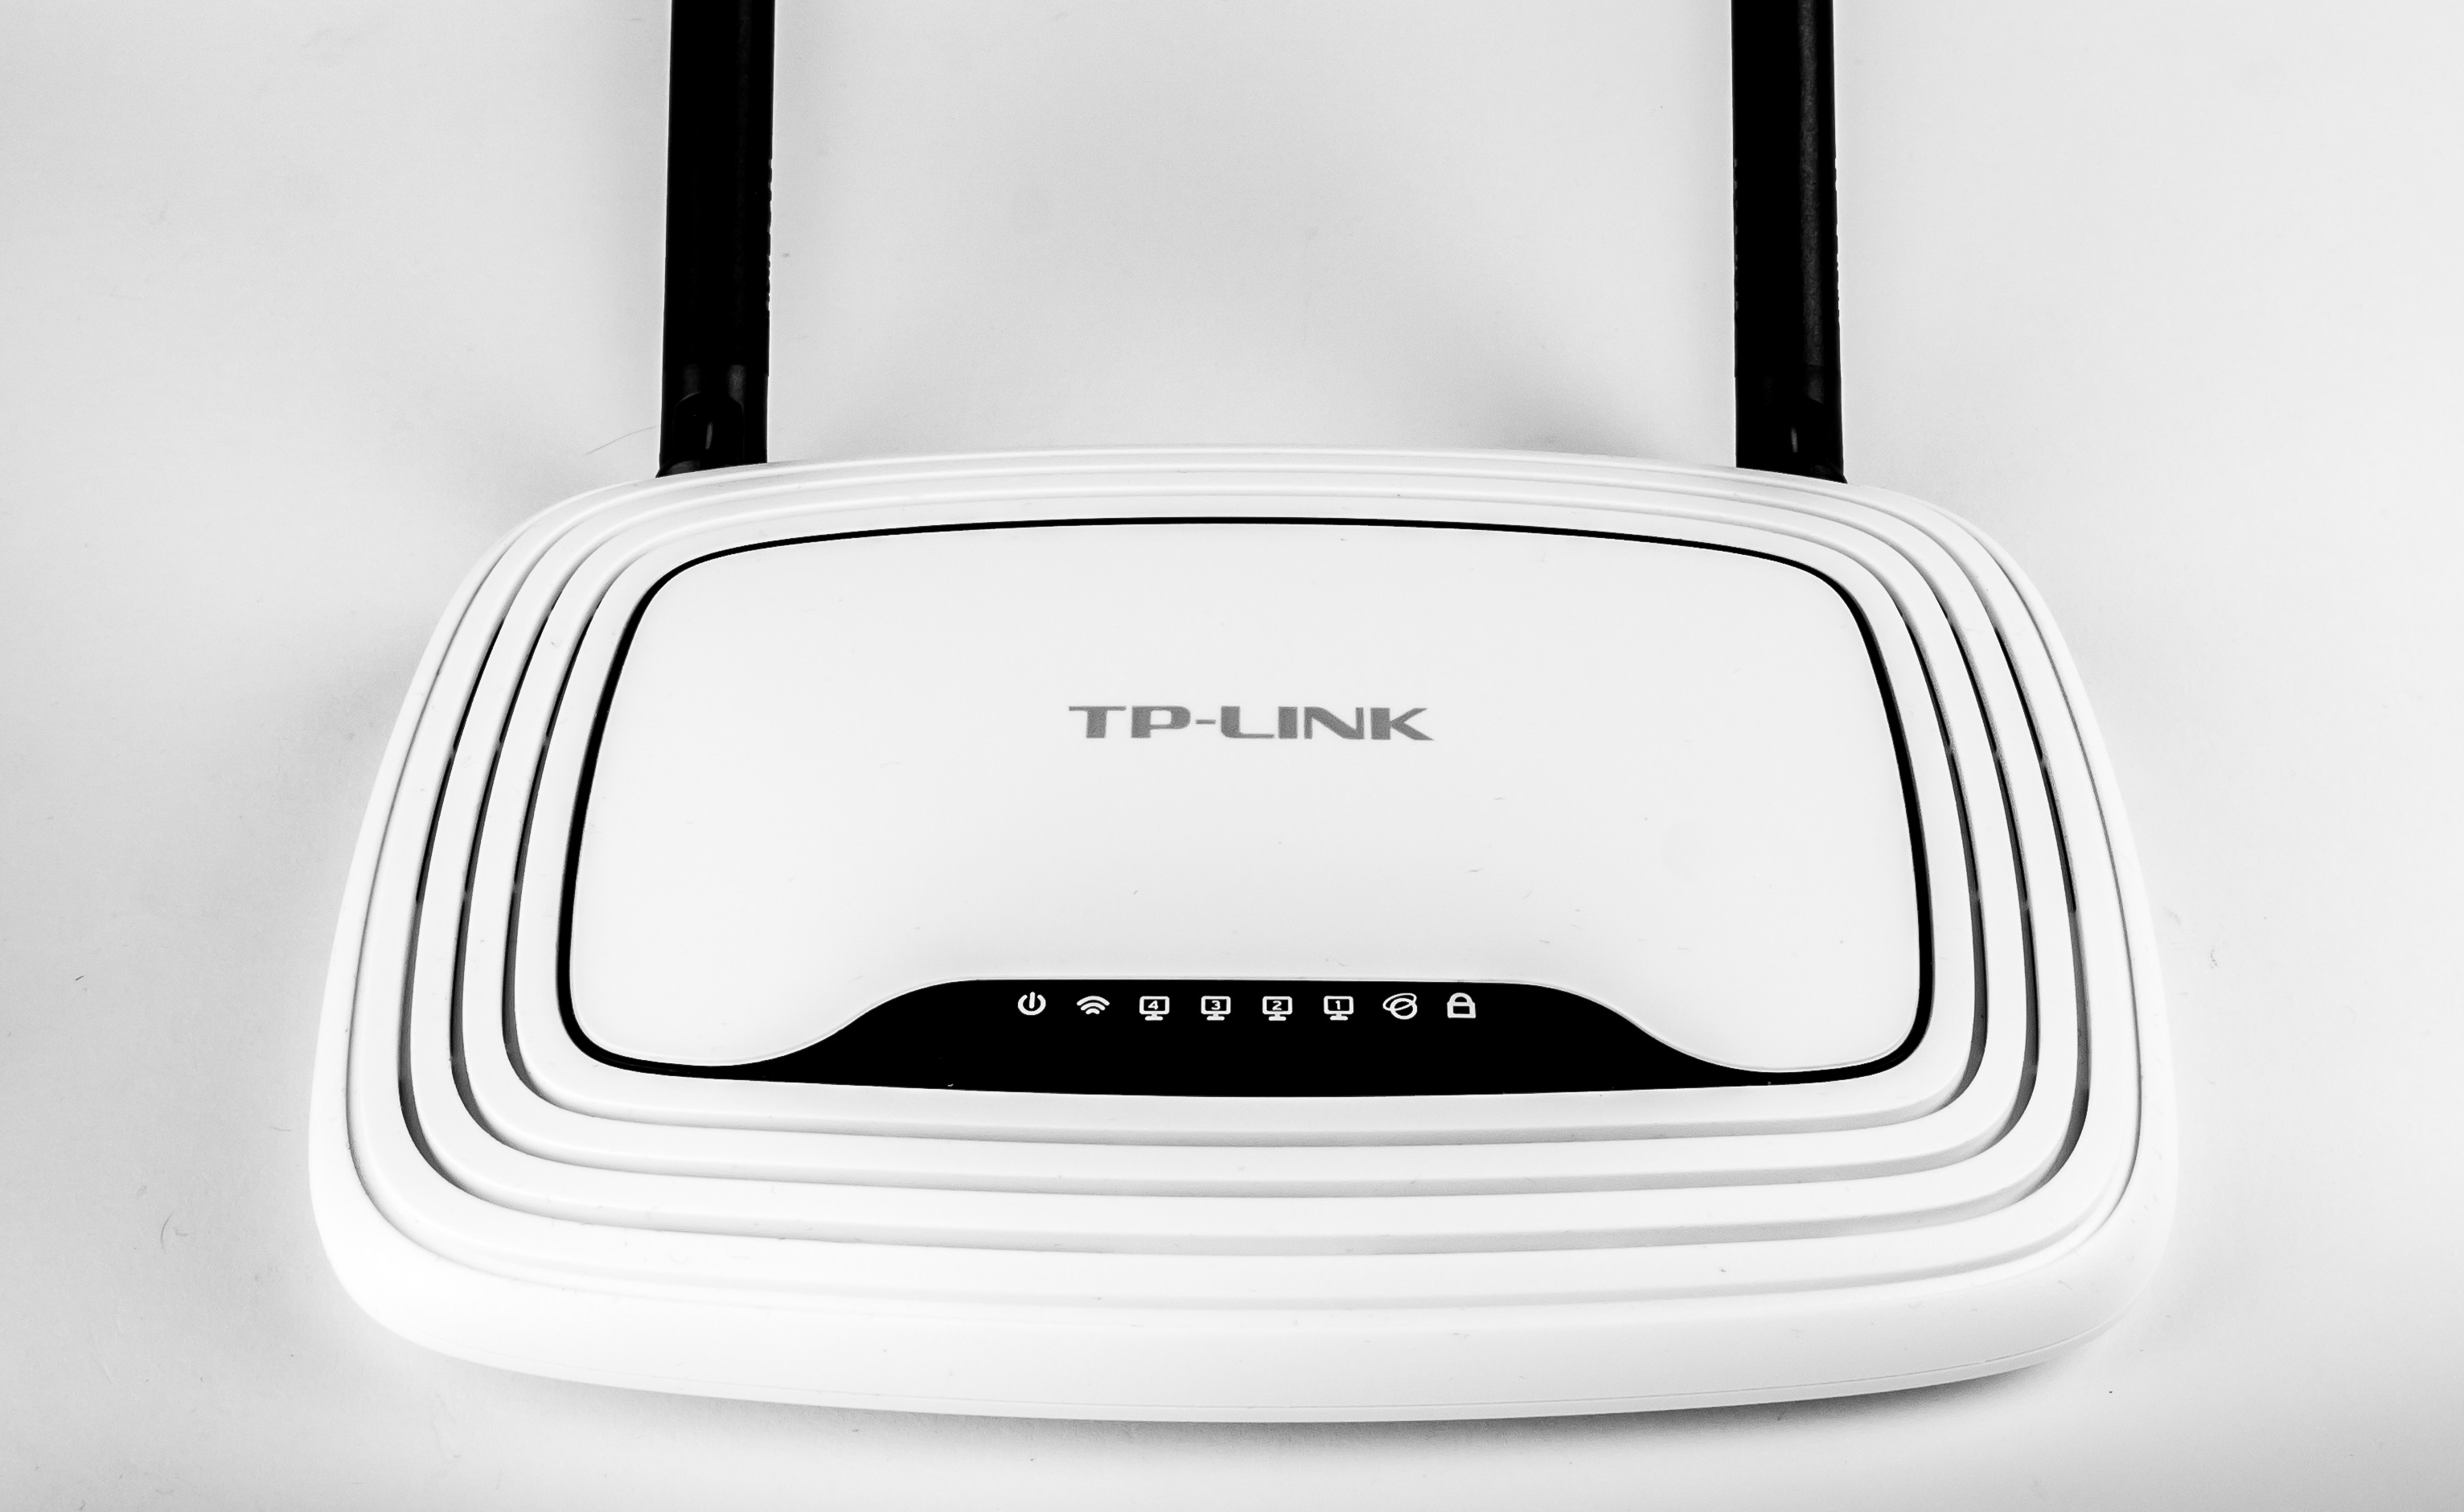 Router wireless TL-WR740N TP-Link recenzie pareri